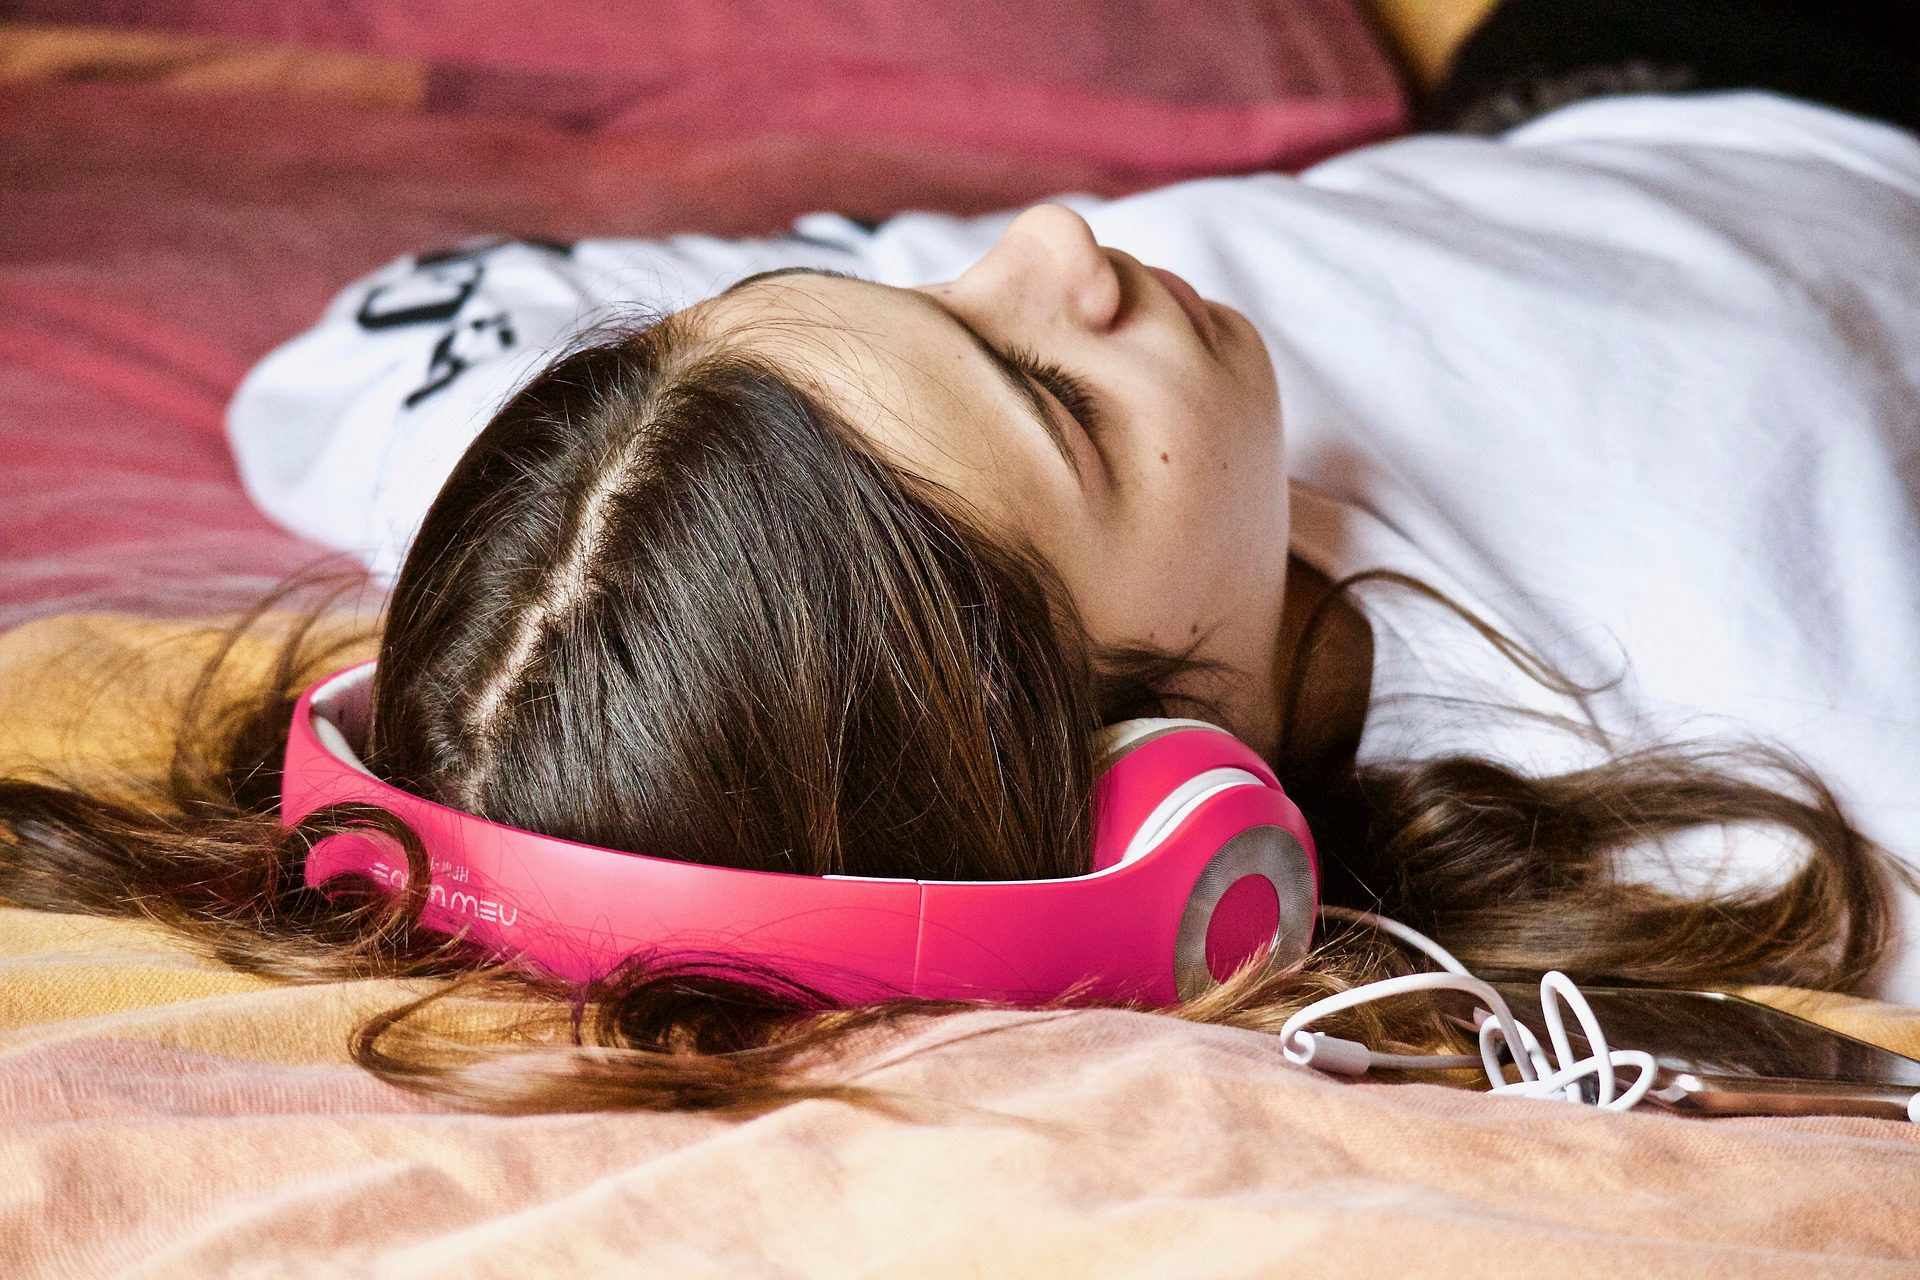 Woman lying on bed wearing pink headphones.